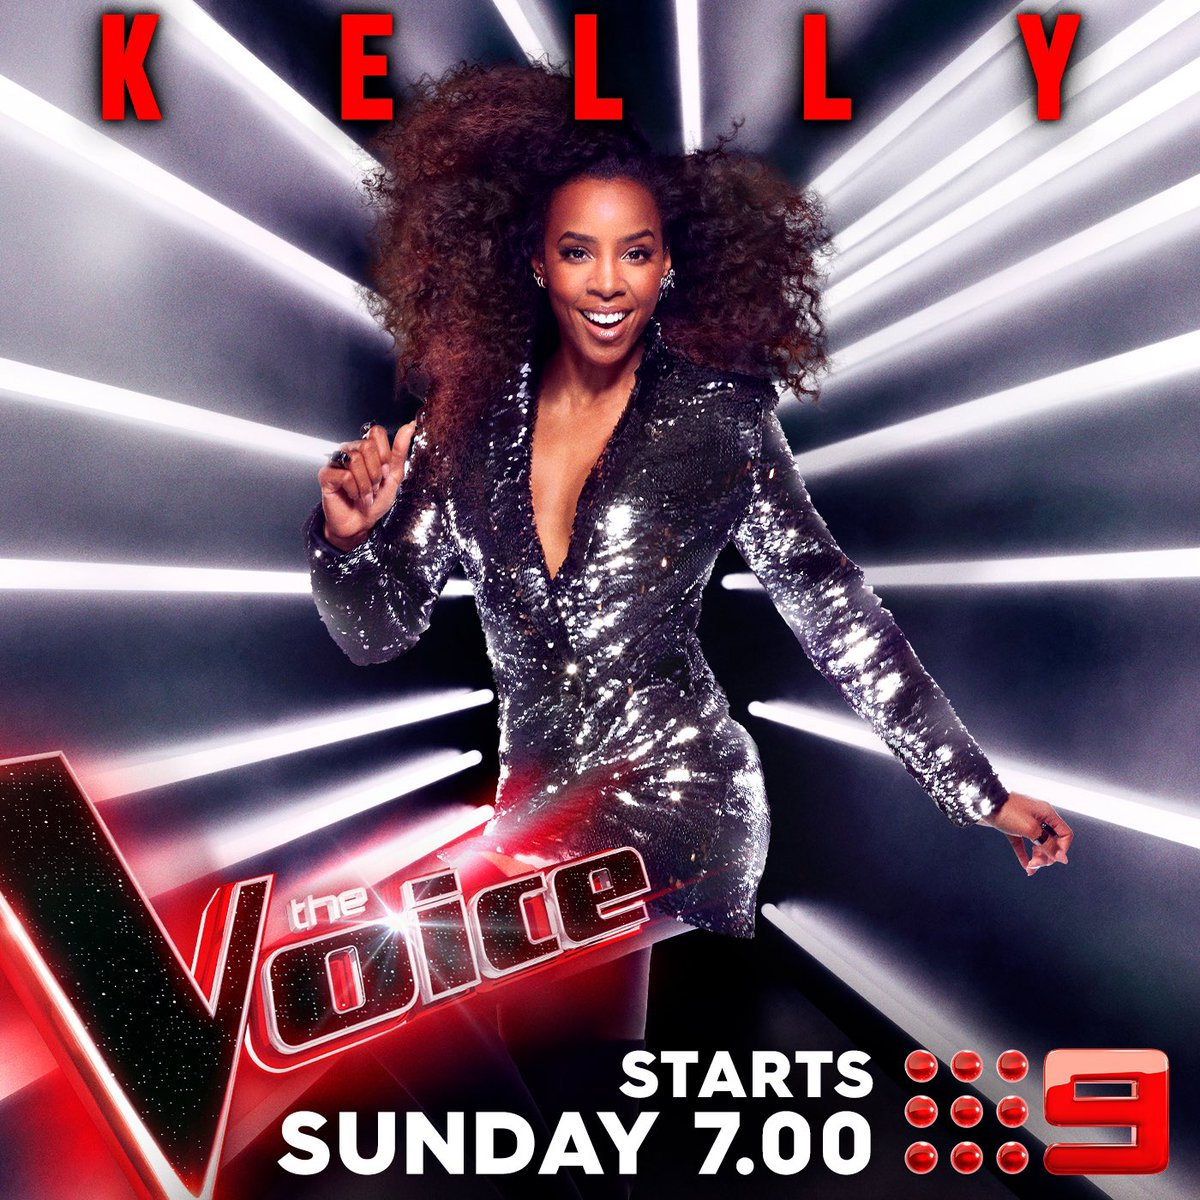 GUYS! There's only HALF AN HOUR to go until #TheVoiceAU - What are you waiting for?! https://t.co/jJPUWdo055